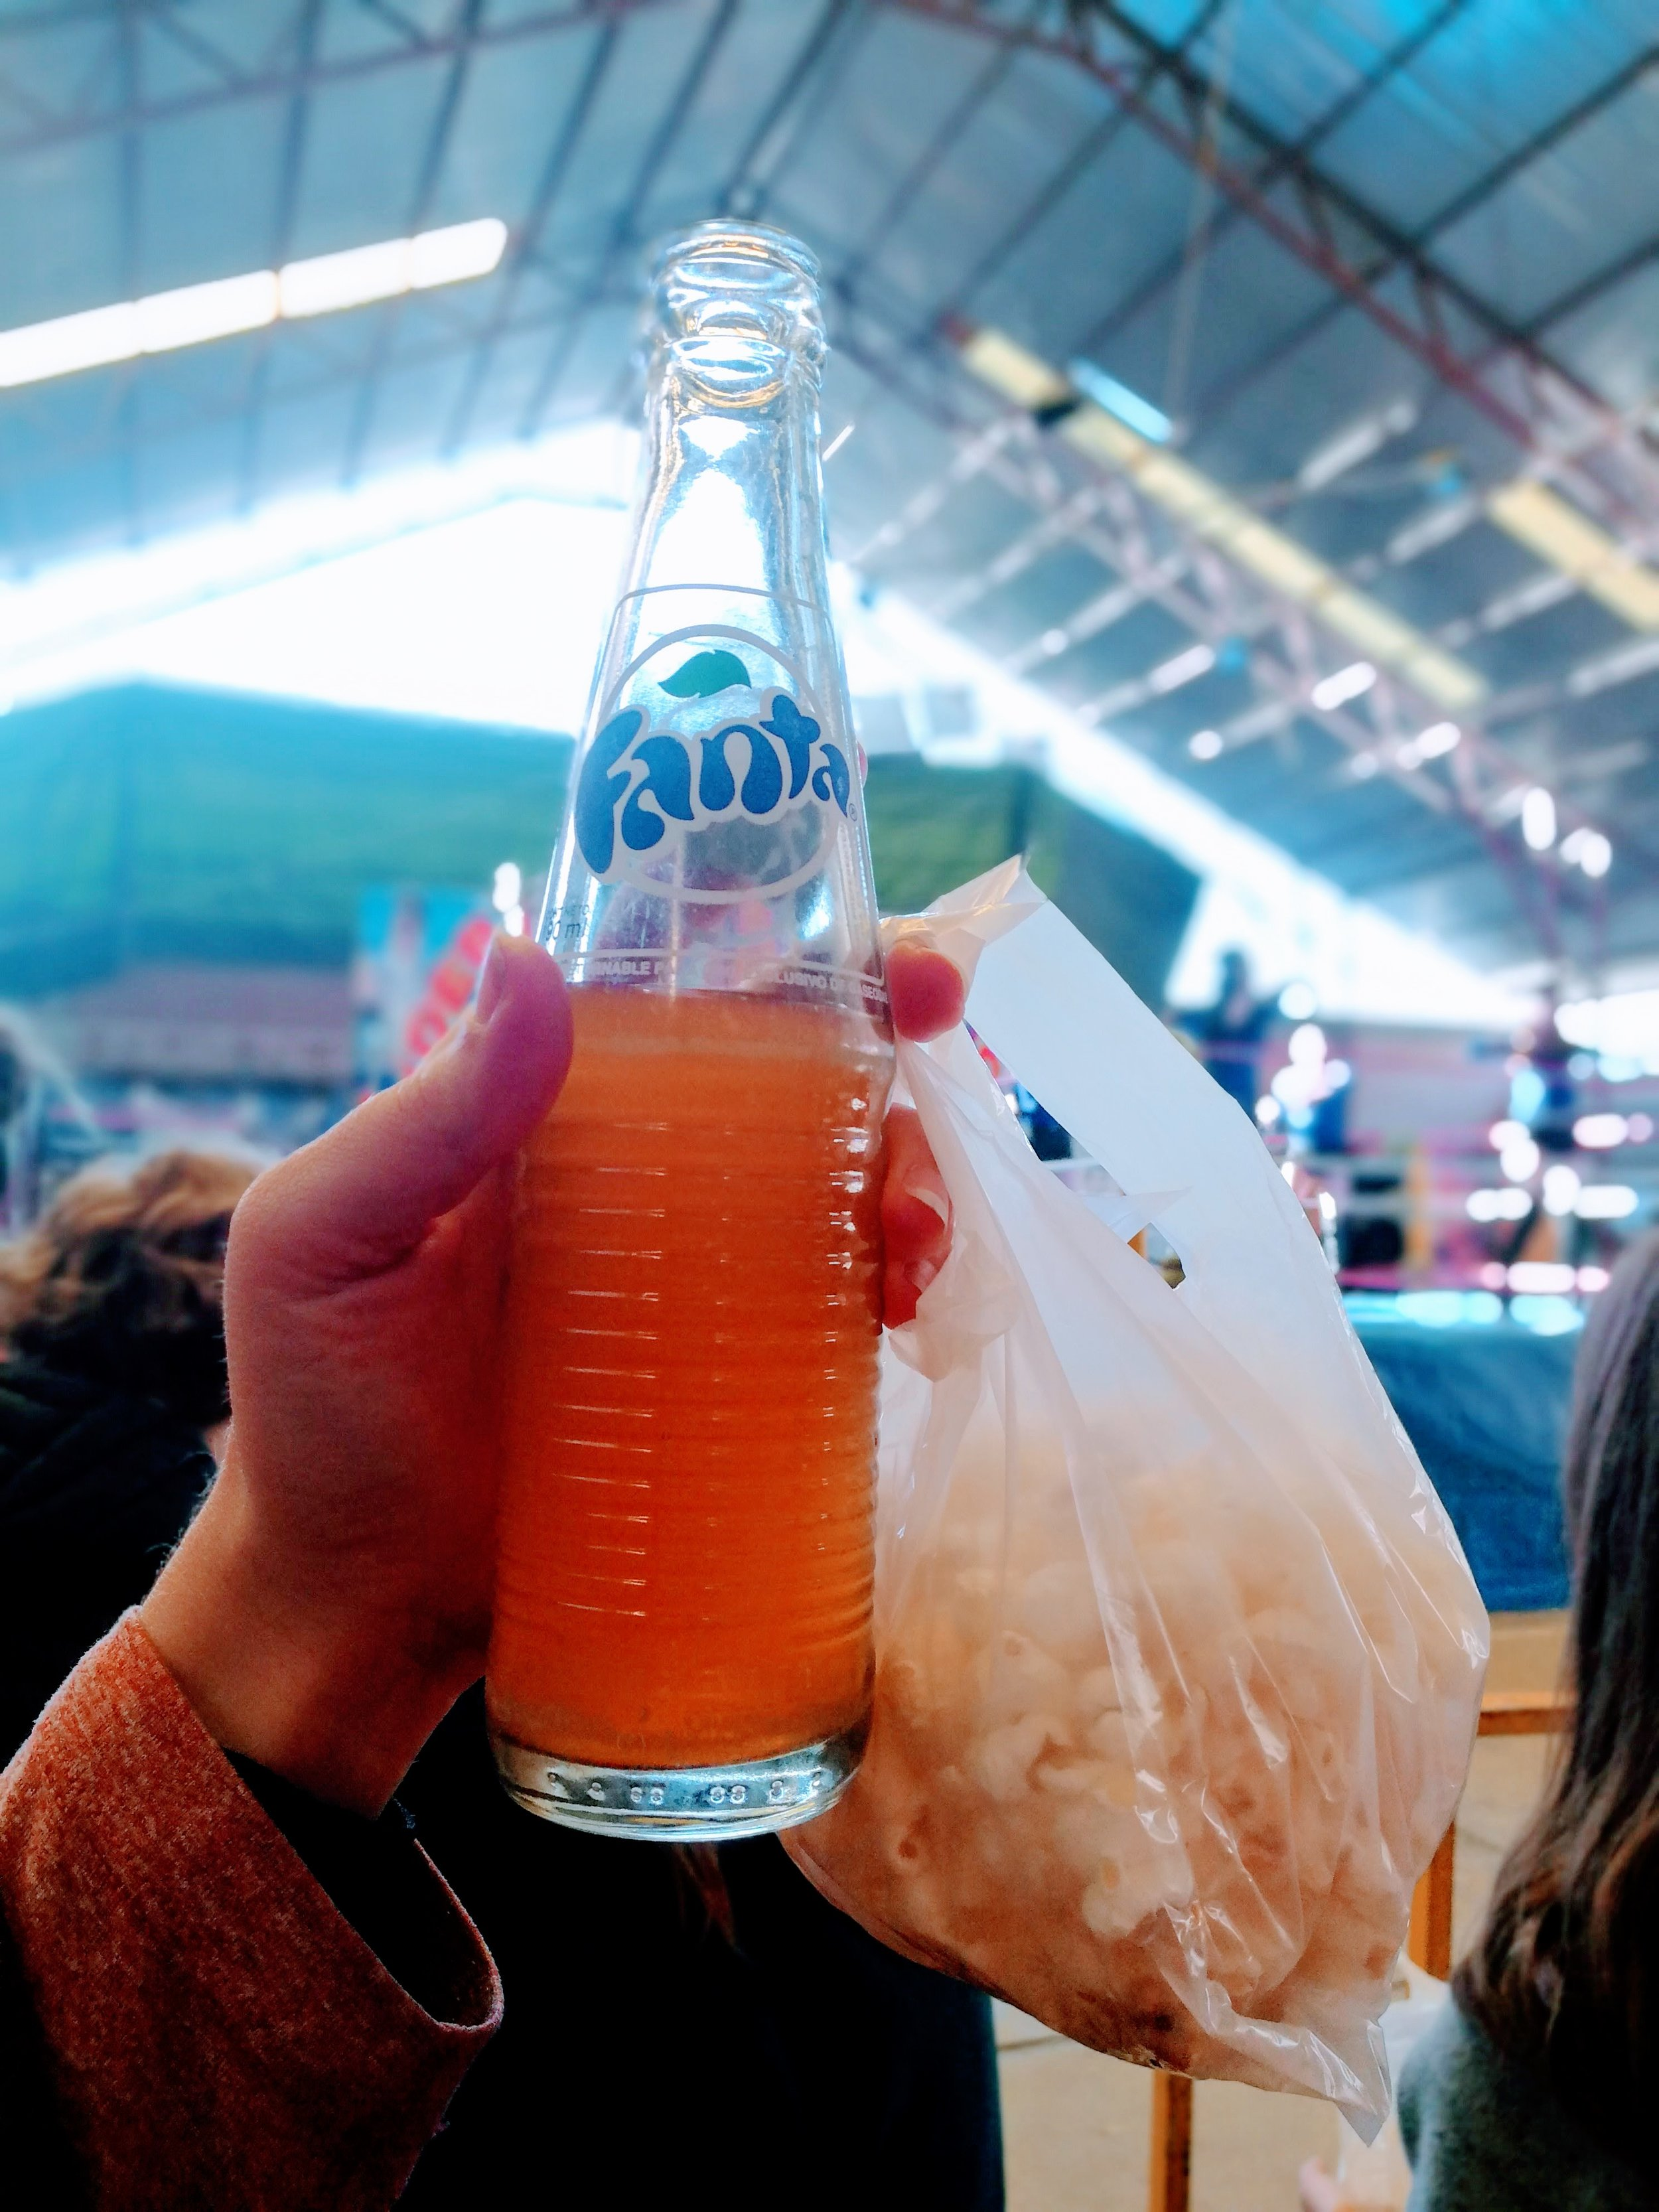 how to see Cholitas Wrestlers in Bolivia. Everything from the history of Cholitas wrestling to where to book your ticket. find out how to get a free fanta orange and popcorn at the show!